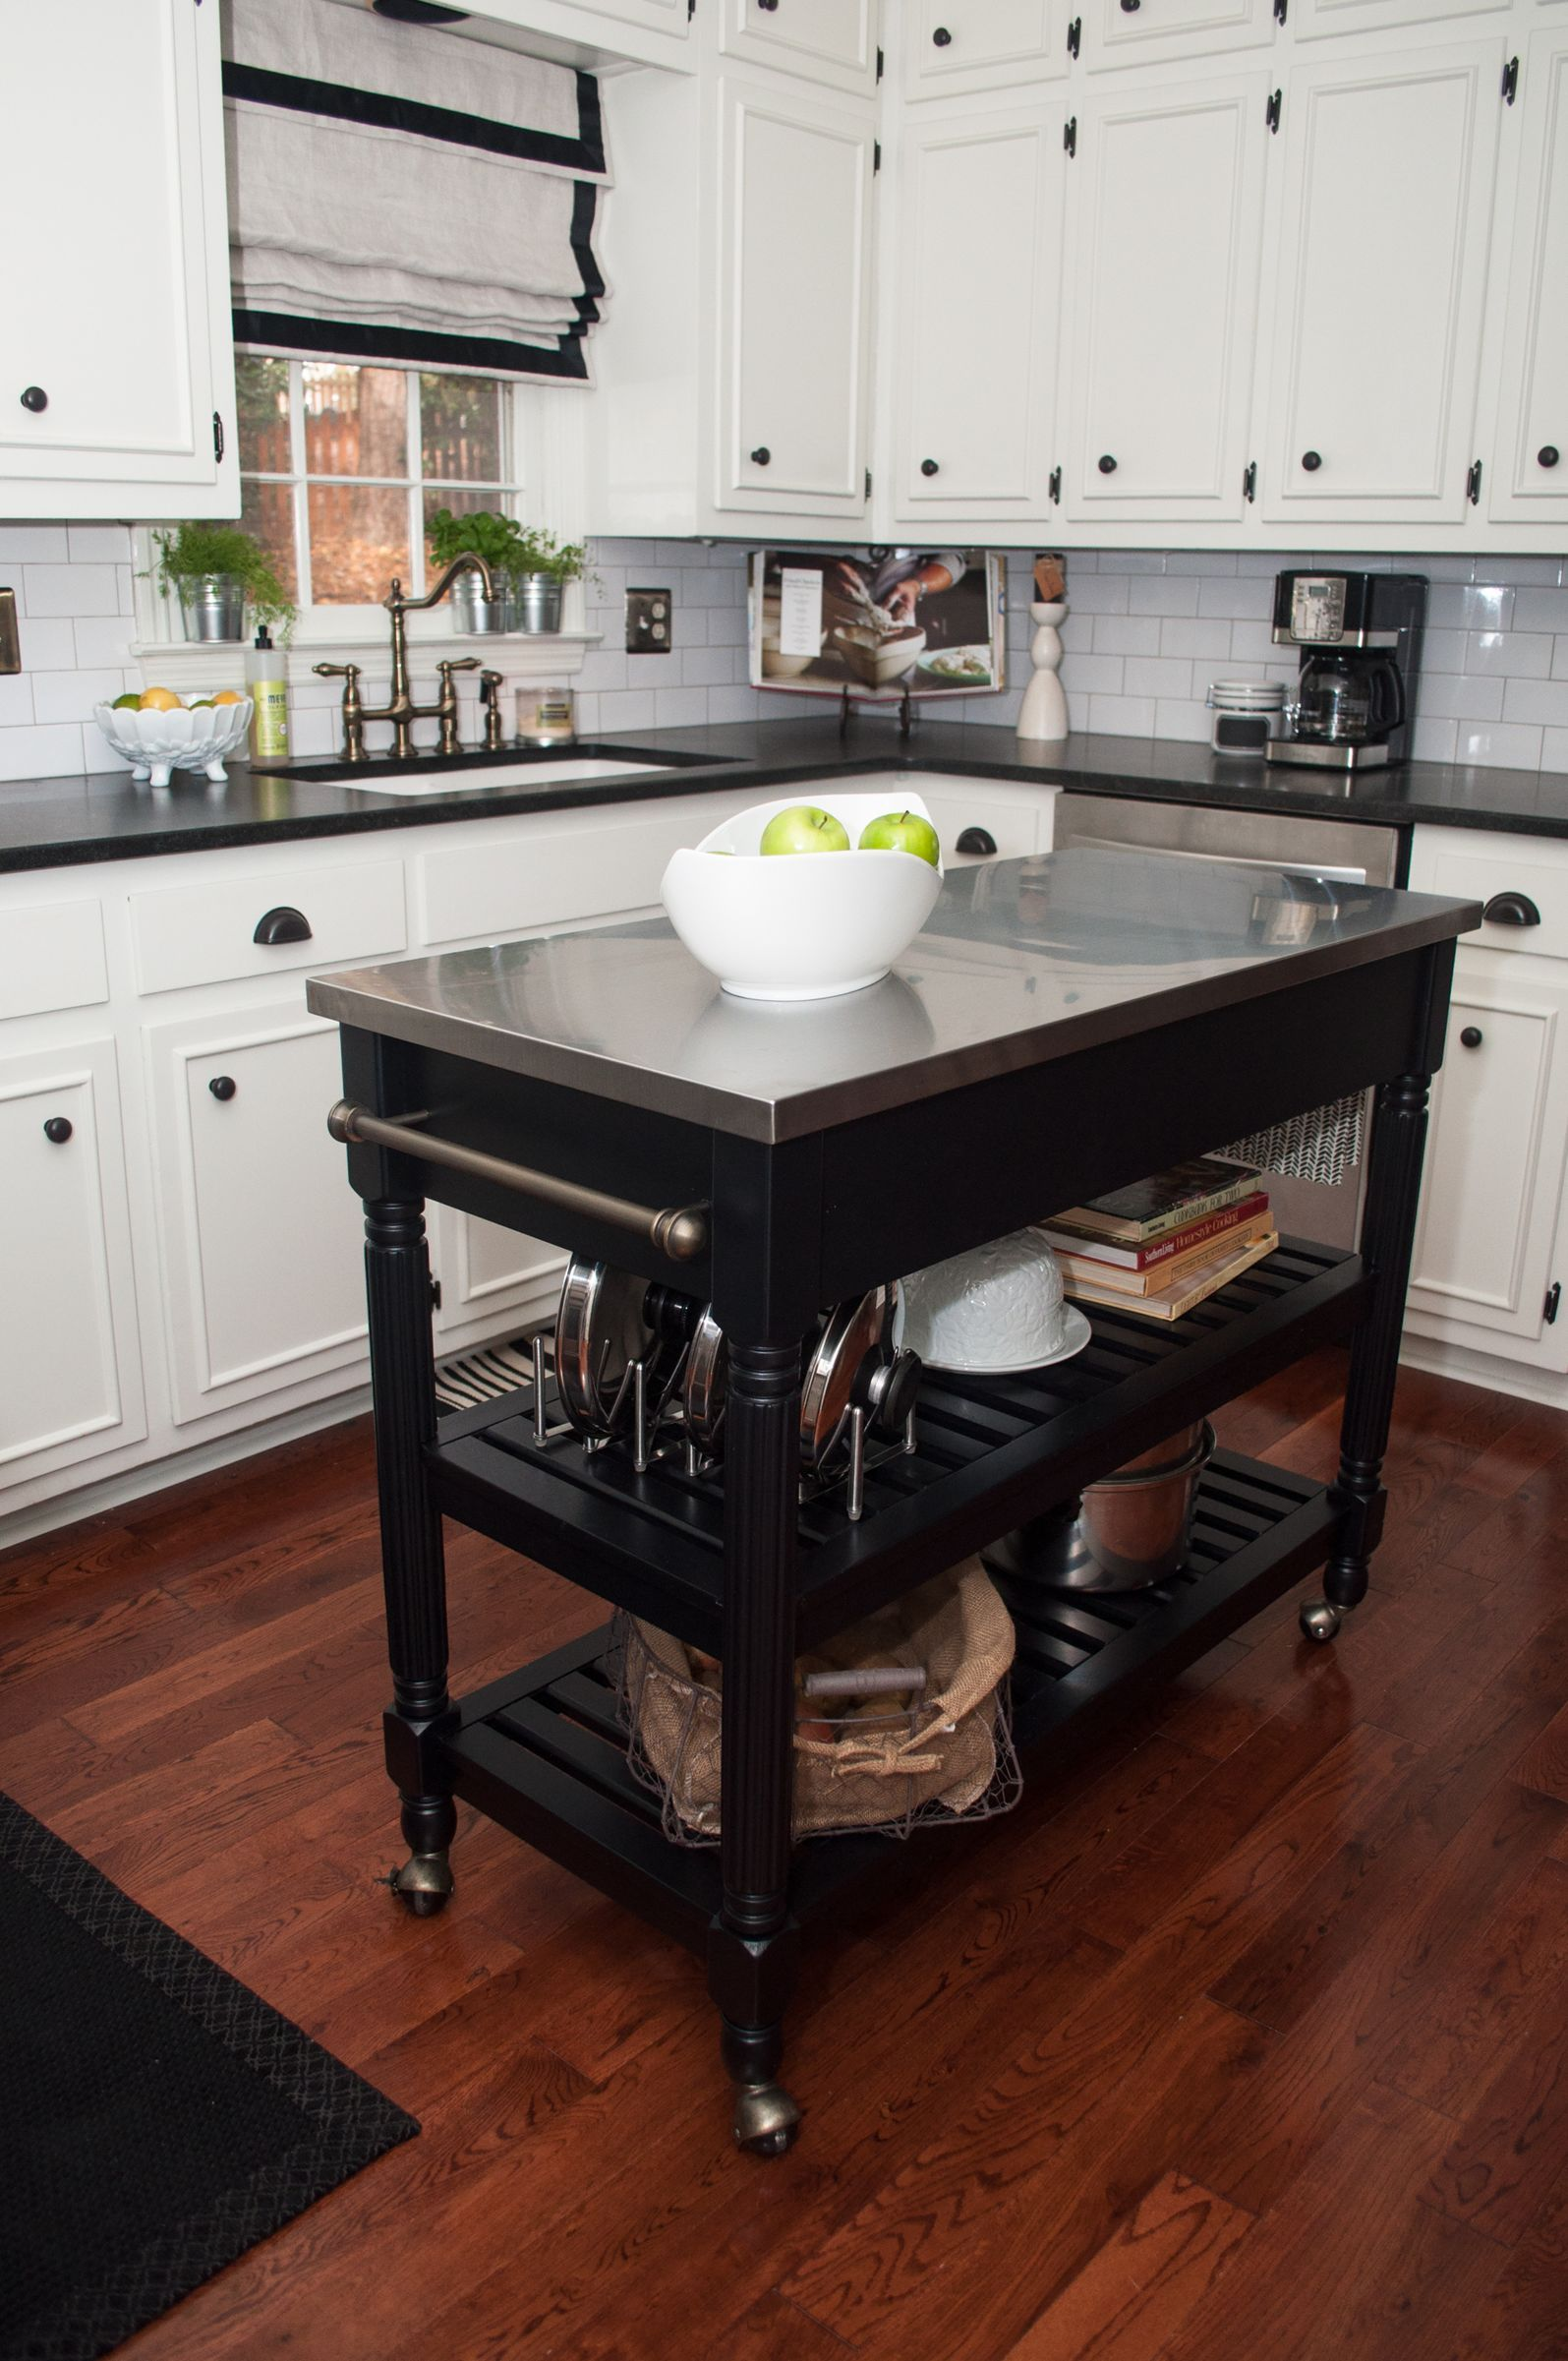 11 Types of Small Kitchen Islands & Carts on Wheels